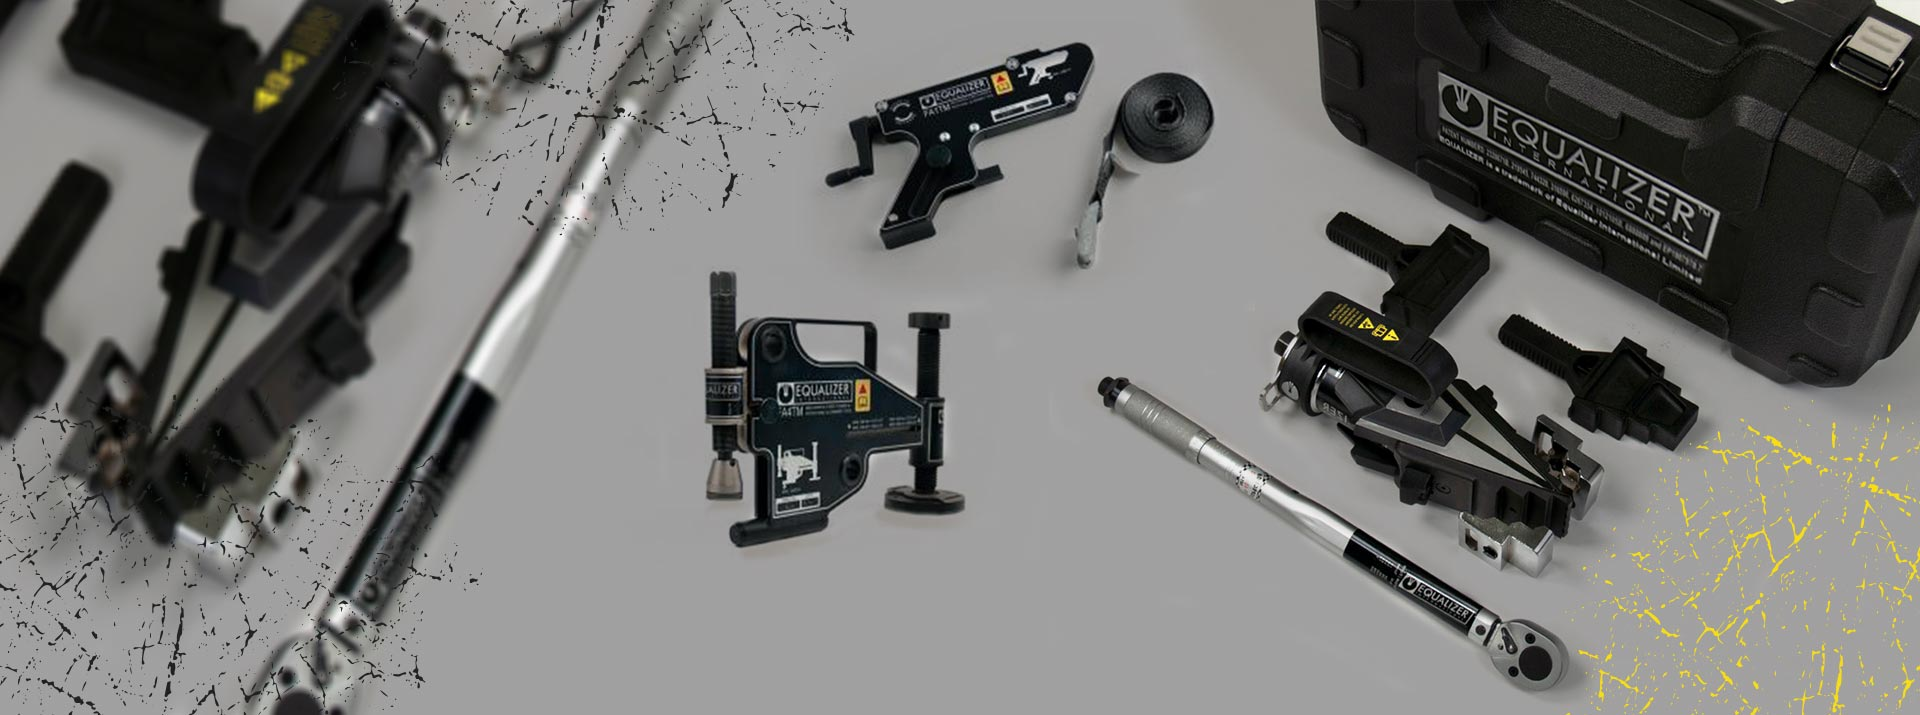 Bolting Tools and Services | Aztec Bolting